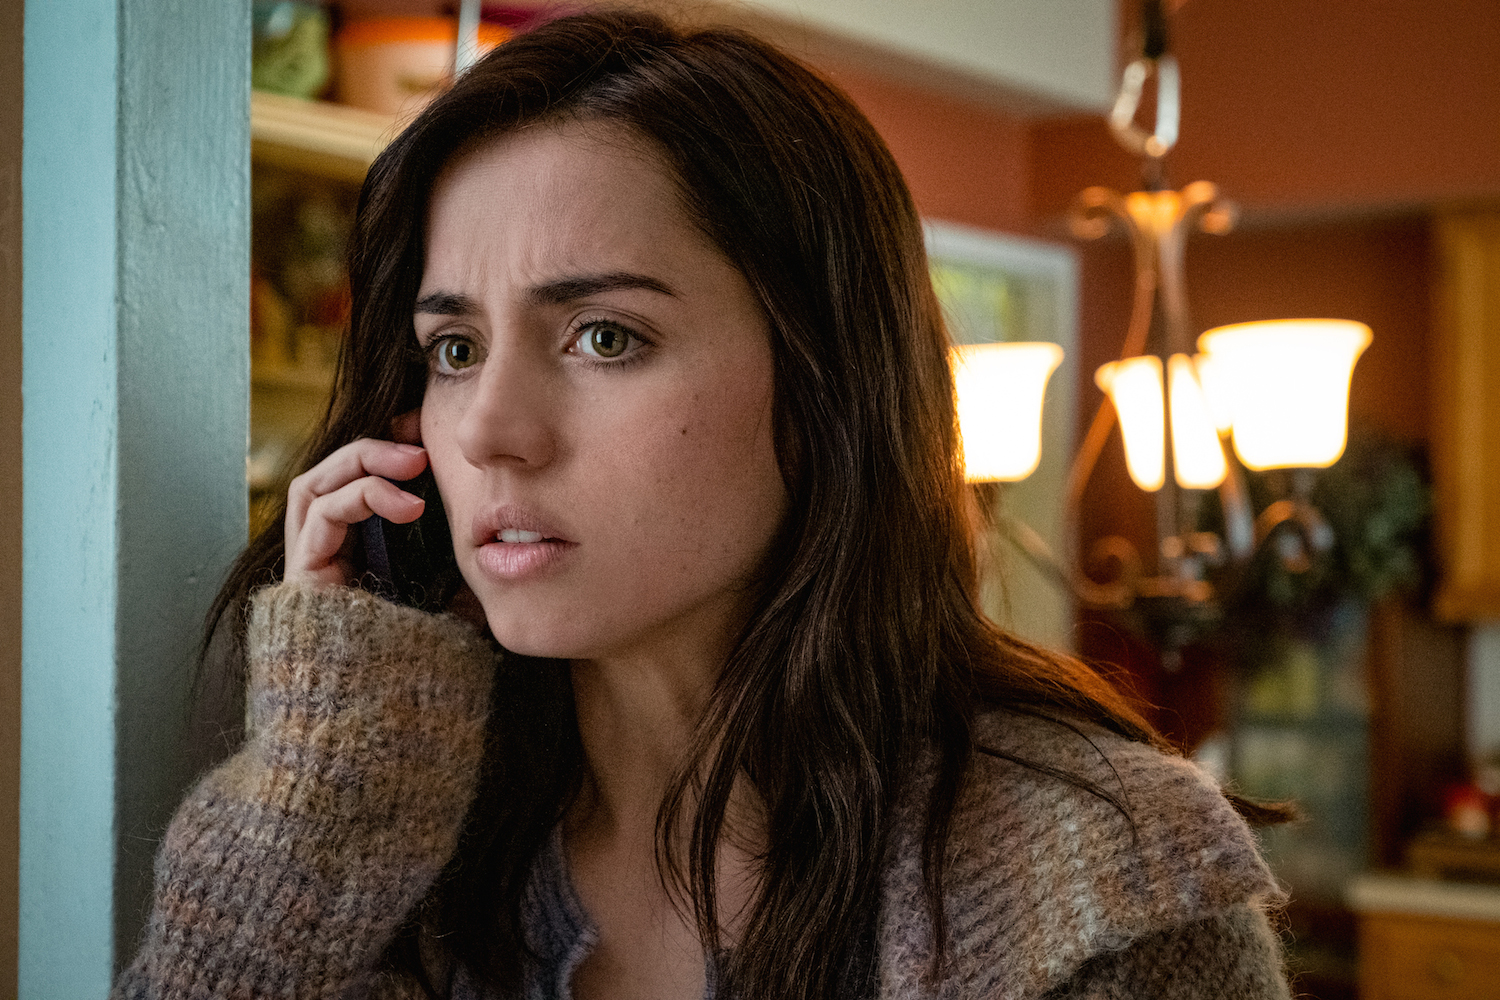 REVIEW: Ana de Armas's Character in 'Knives Out' Is the Latina Heroine We Need in the Trump Era